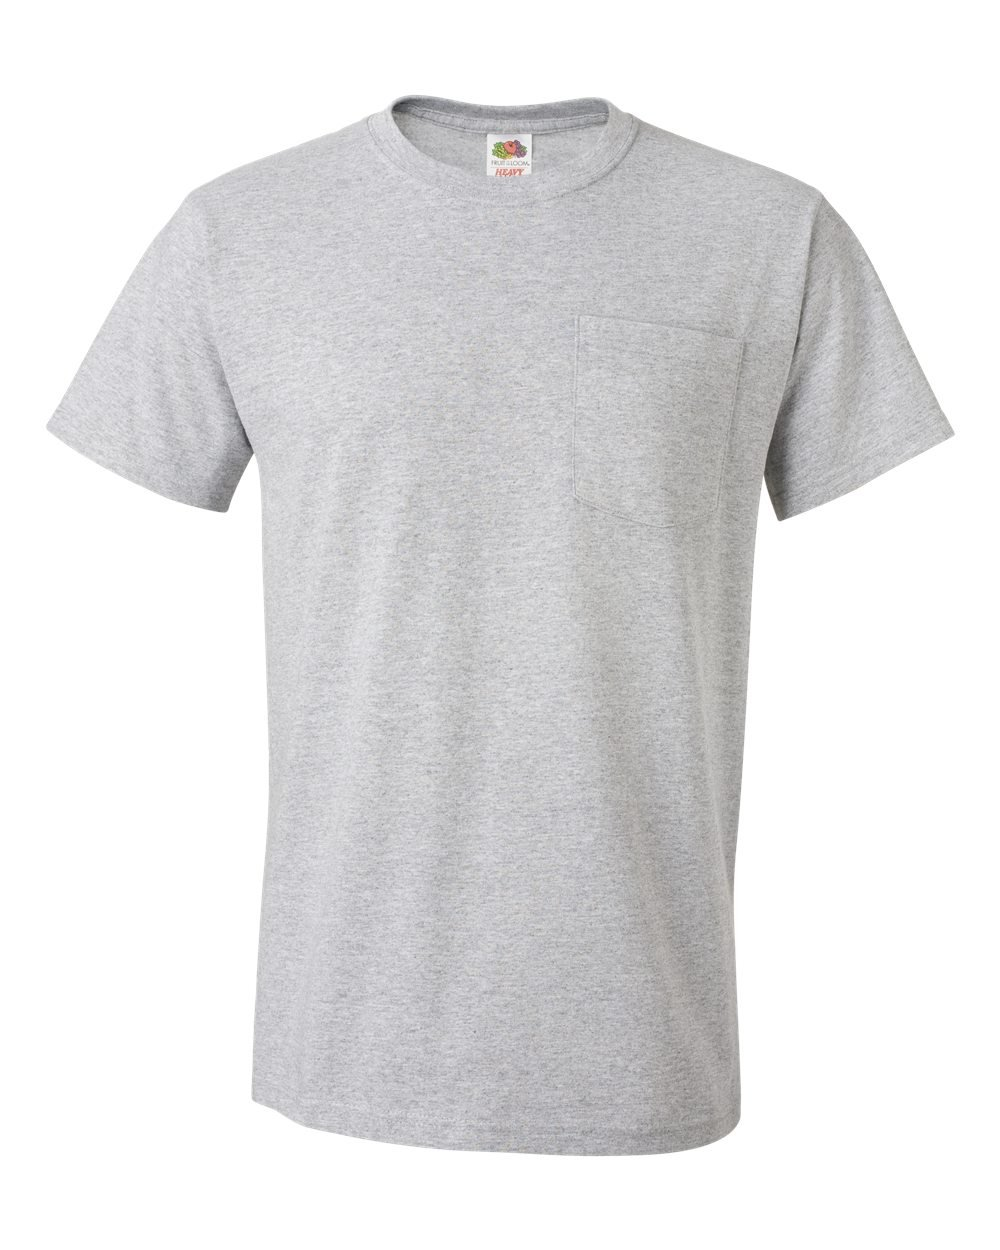 Fruit of the Loom HD Cotton Pocket Tee With Tearaway Label,Athletic Heather,3XL